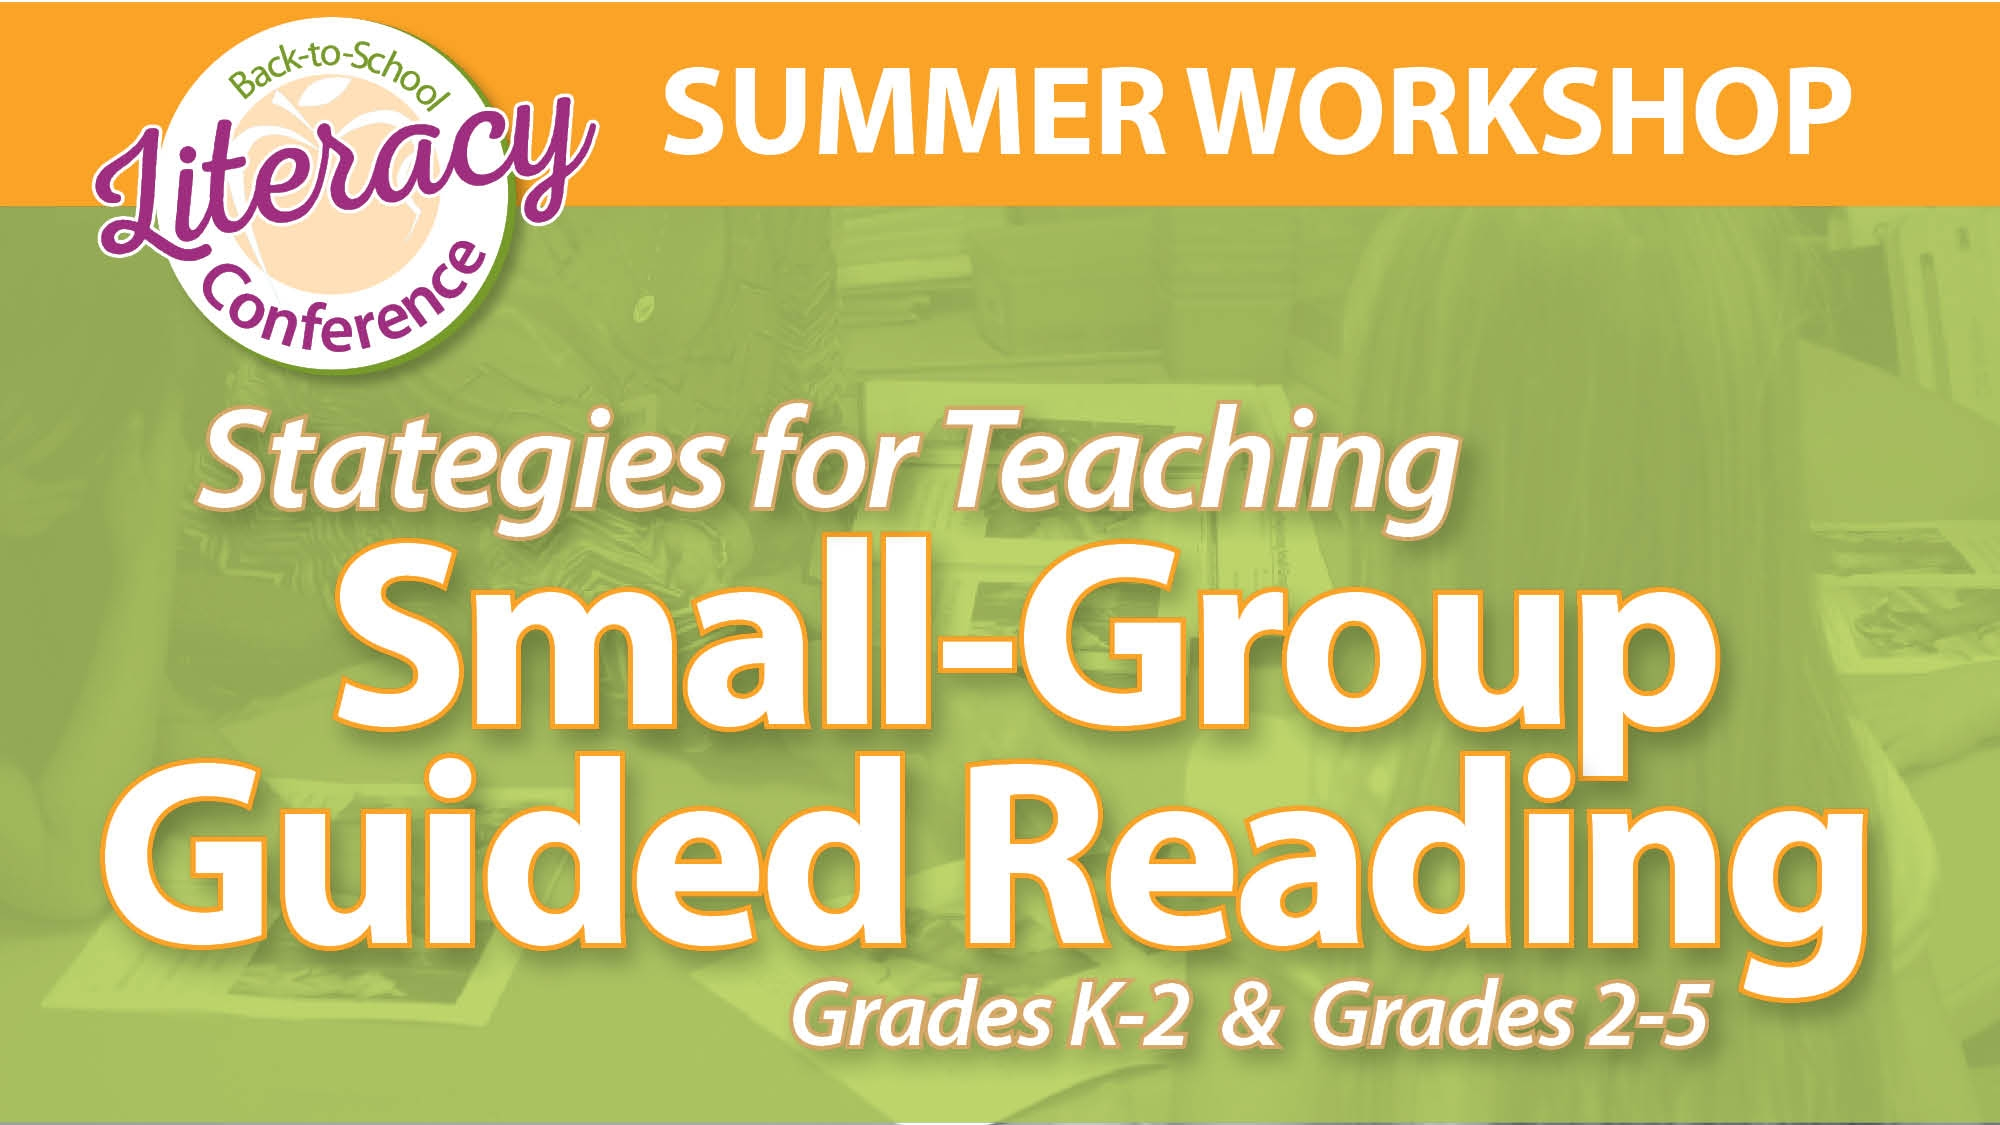 Back-to-School Literacy Conference Teaching Small-Group Guided Reading Grades K-5